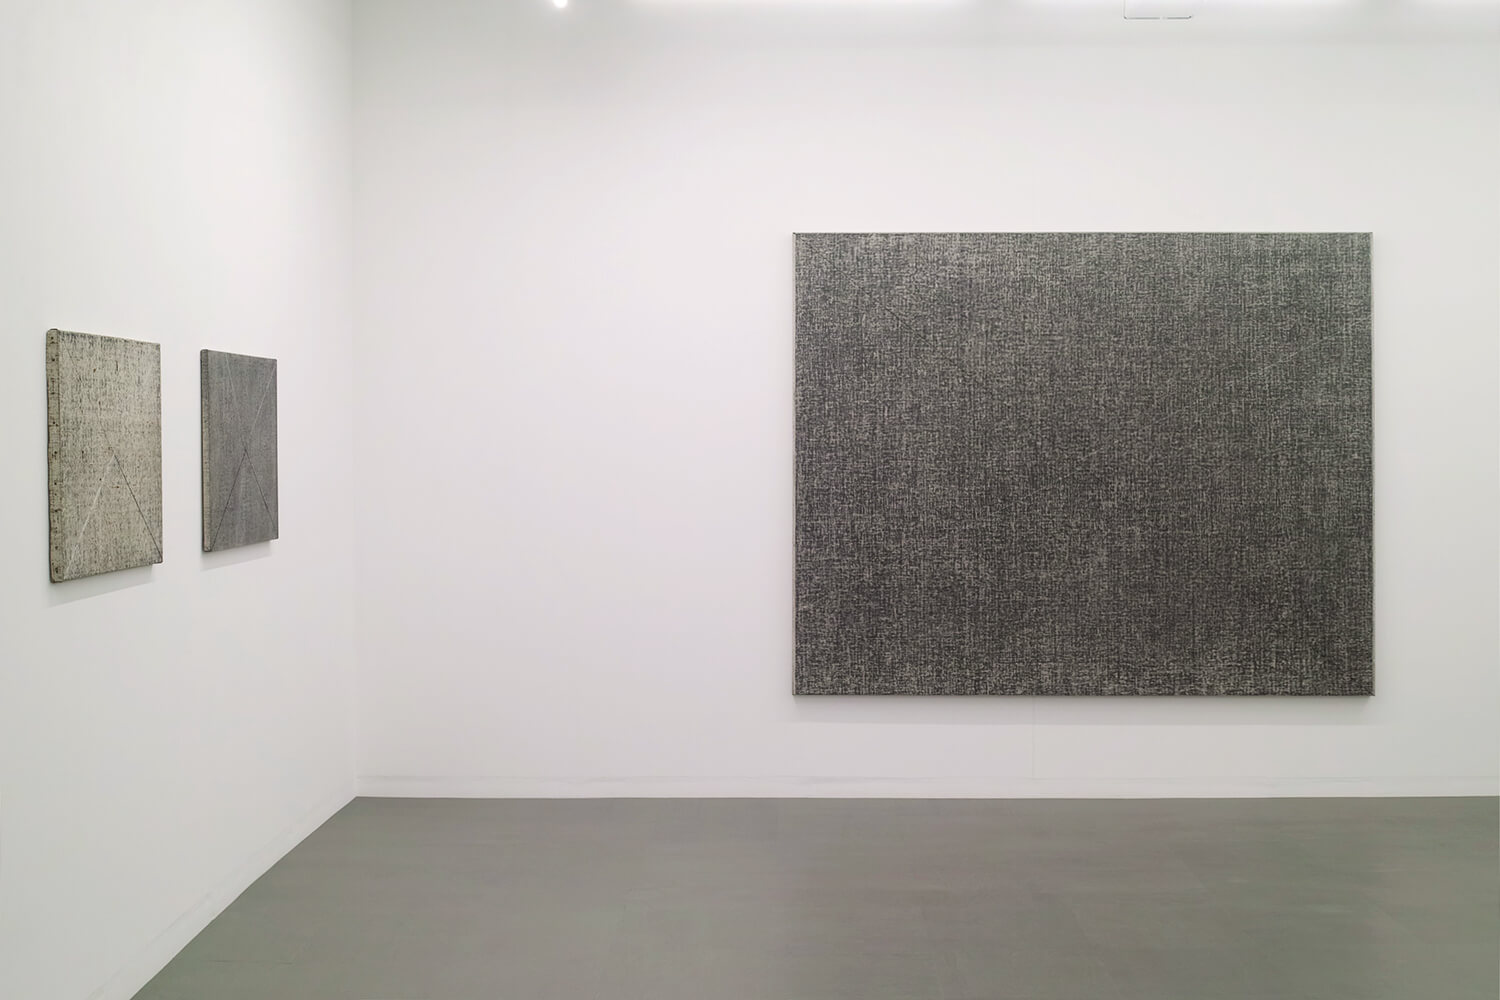 Drawing by drawing, Oil, crayon, chalk on canvas, 60.5 x 72.5 cm, 1978 (left)<br>Drawing by drawing, Oil, crayon, chalk on canvas, 60.5 x 72.5 cm, 1978 (center)<br>Drawing by drawing, Oil, crayon, chalk on canvas, 182 x 227 cm, 1979 (right)